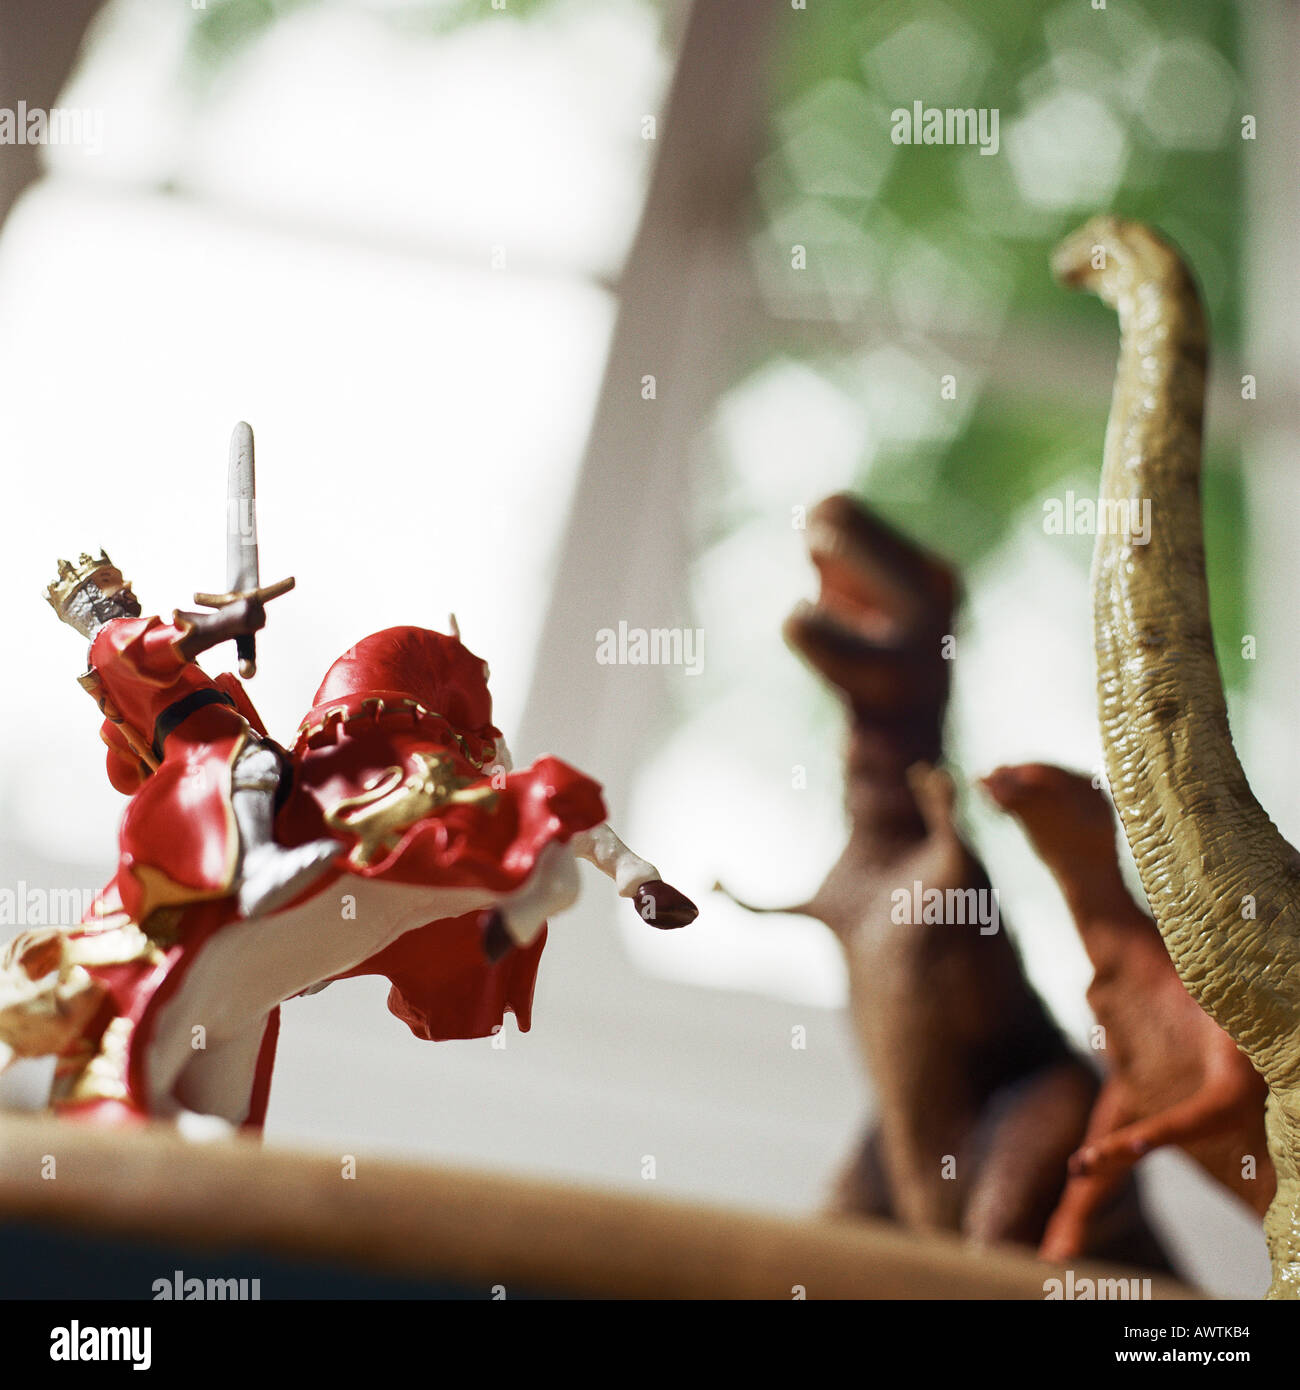 Toy knight fighting against toy dinosaurs - Stock Image